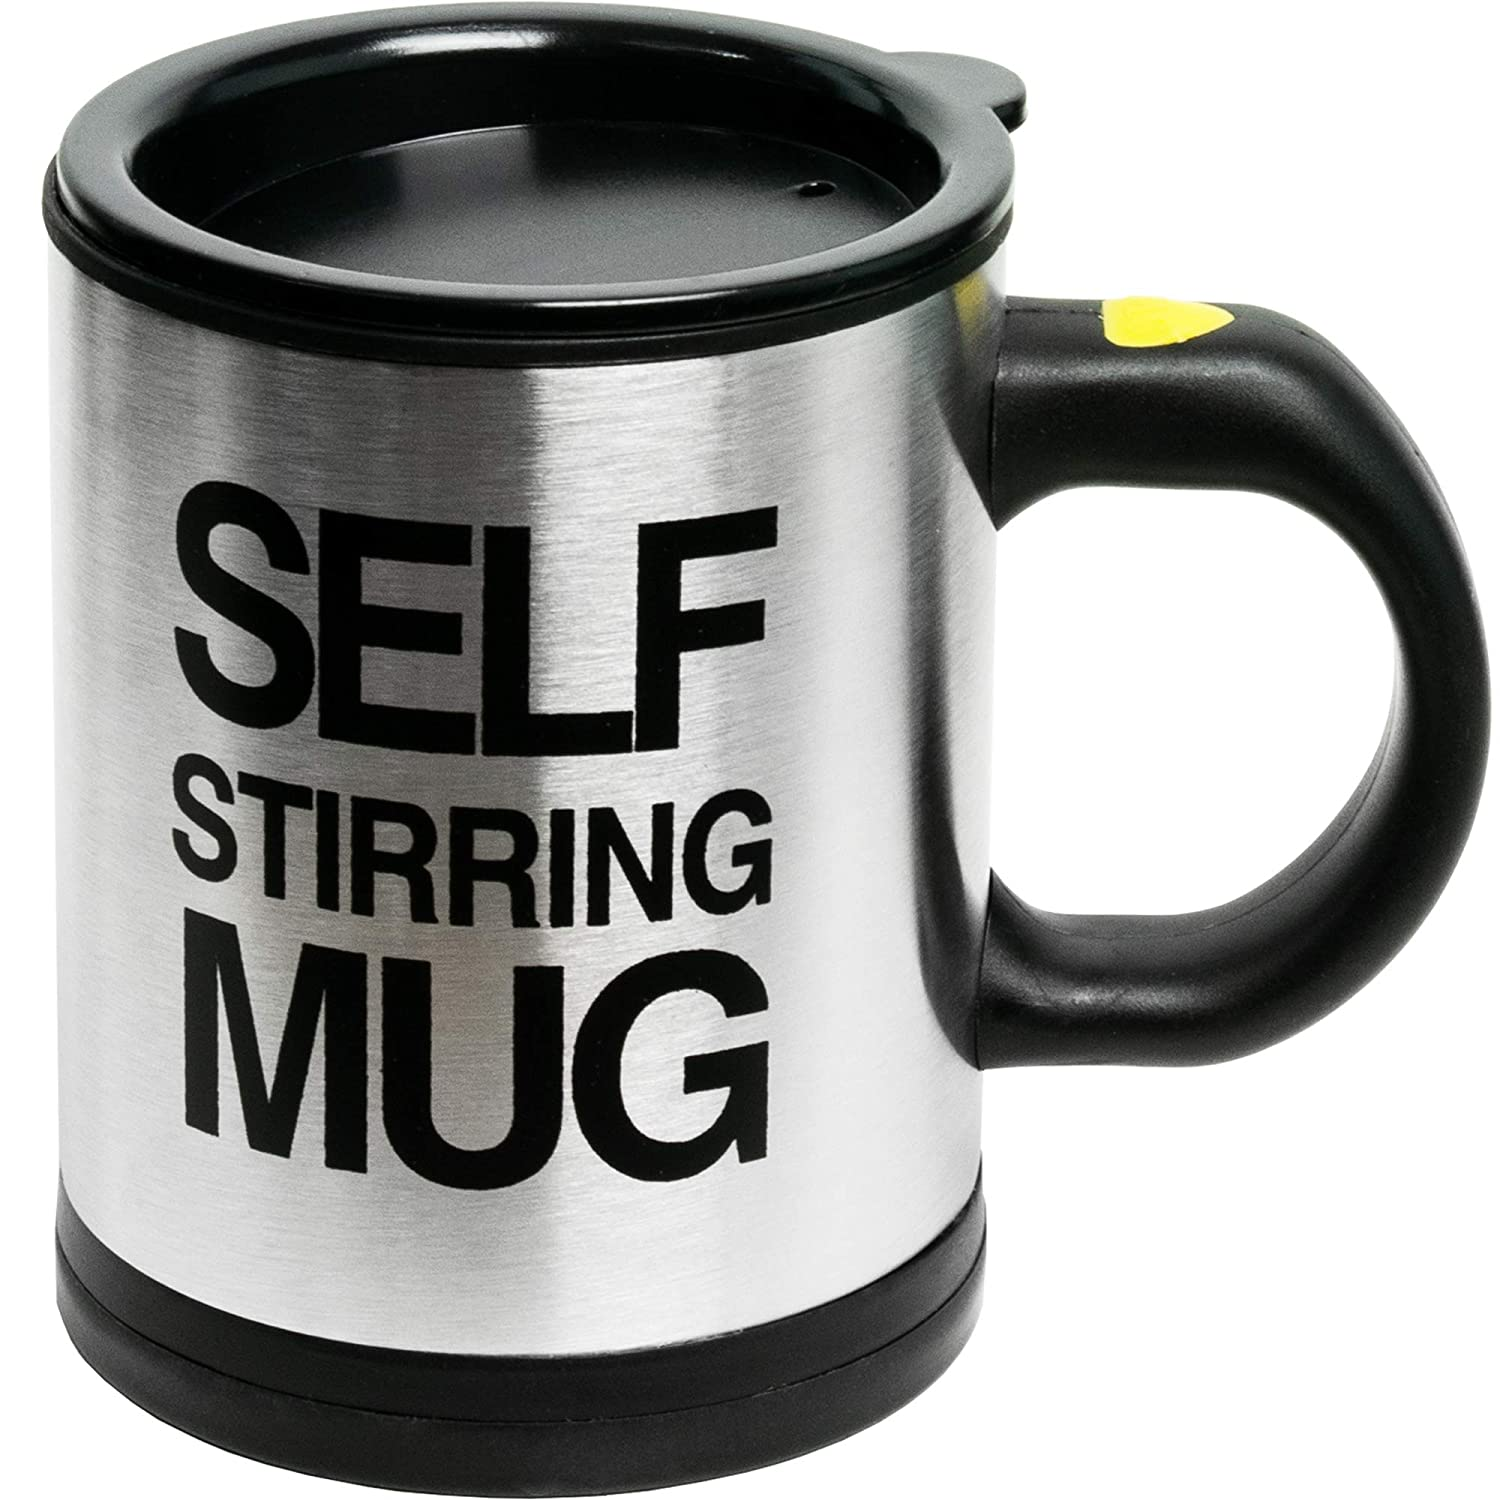 7e0ca2af6ee Self Stirring Coffee Mug Cup - Funny Electric Stainless Steel Automatic  Self Mixing & Spinning Home Office Travel Mixer Cup Best Cute Christmas ...